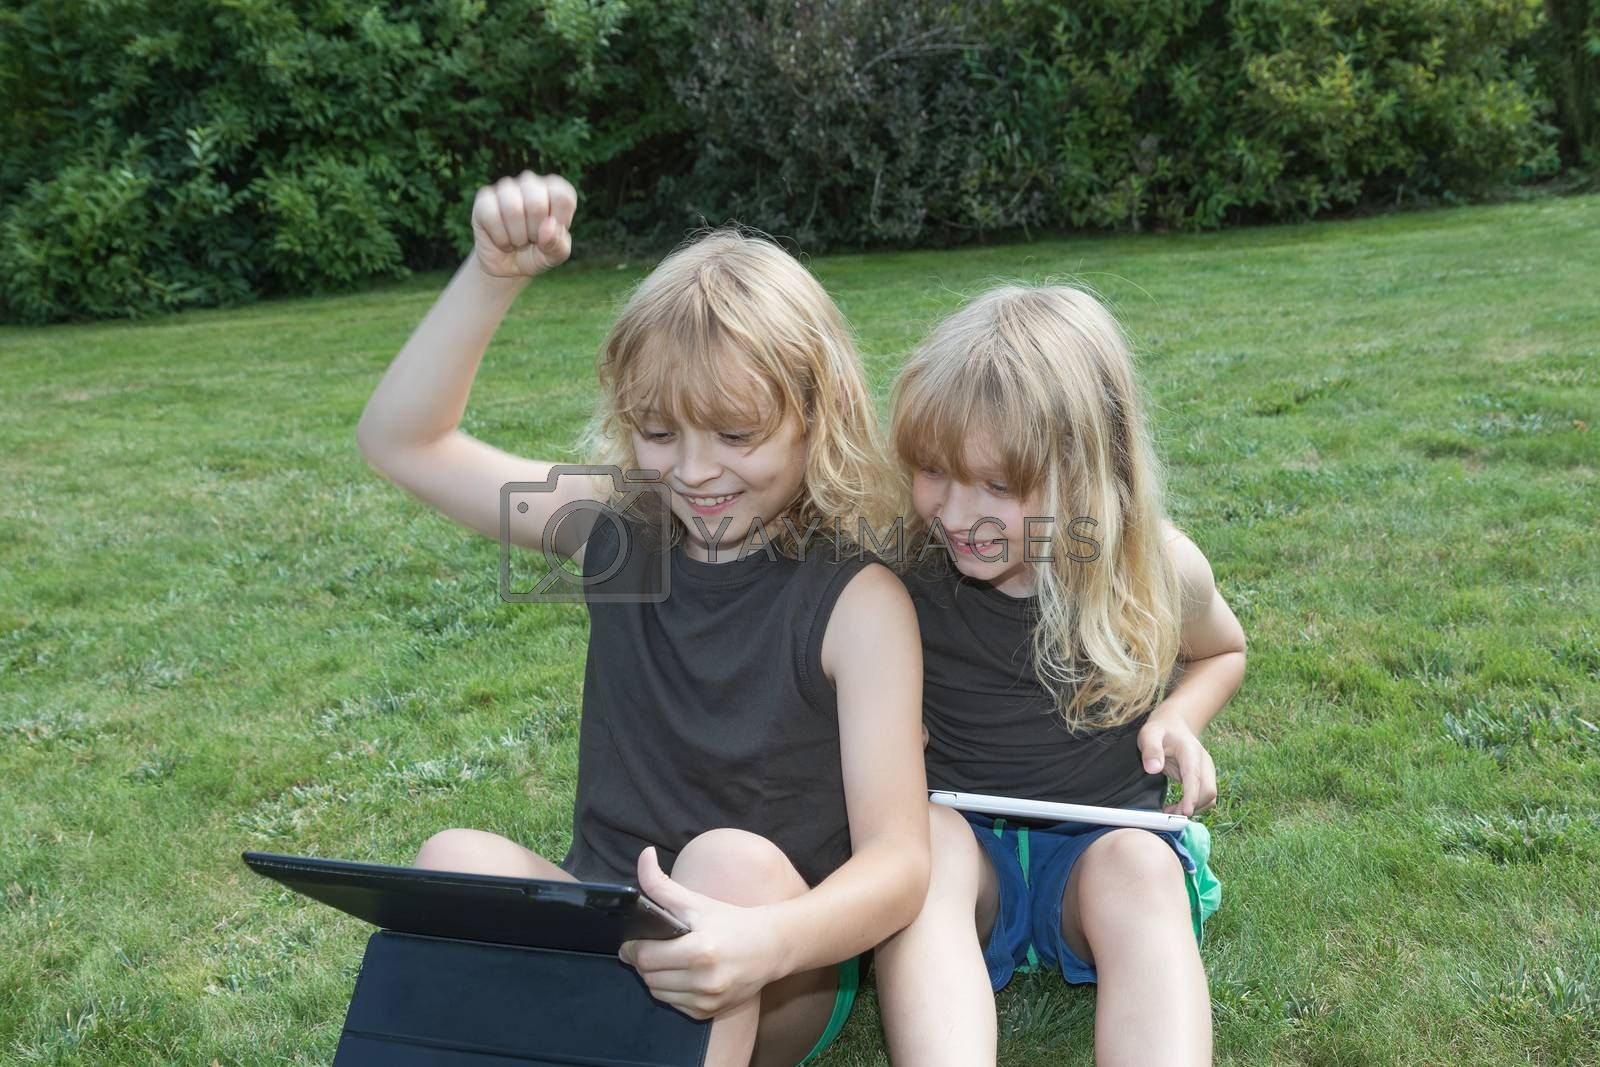 Two blond brothers are sitting on the lawn and playing games on the tablets. Boy sitting on the left is winner. He has raised his left hand.